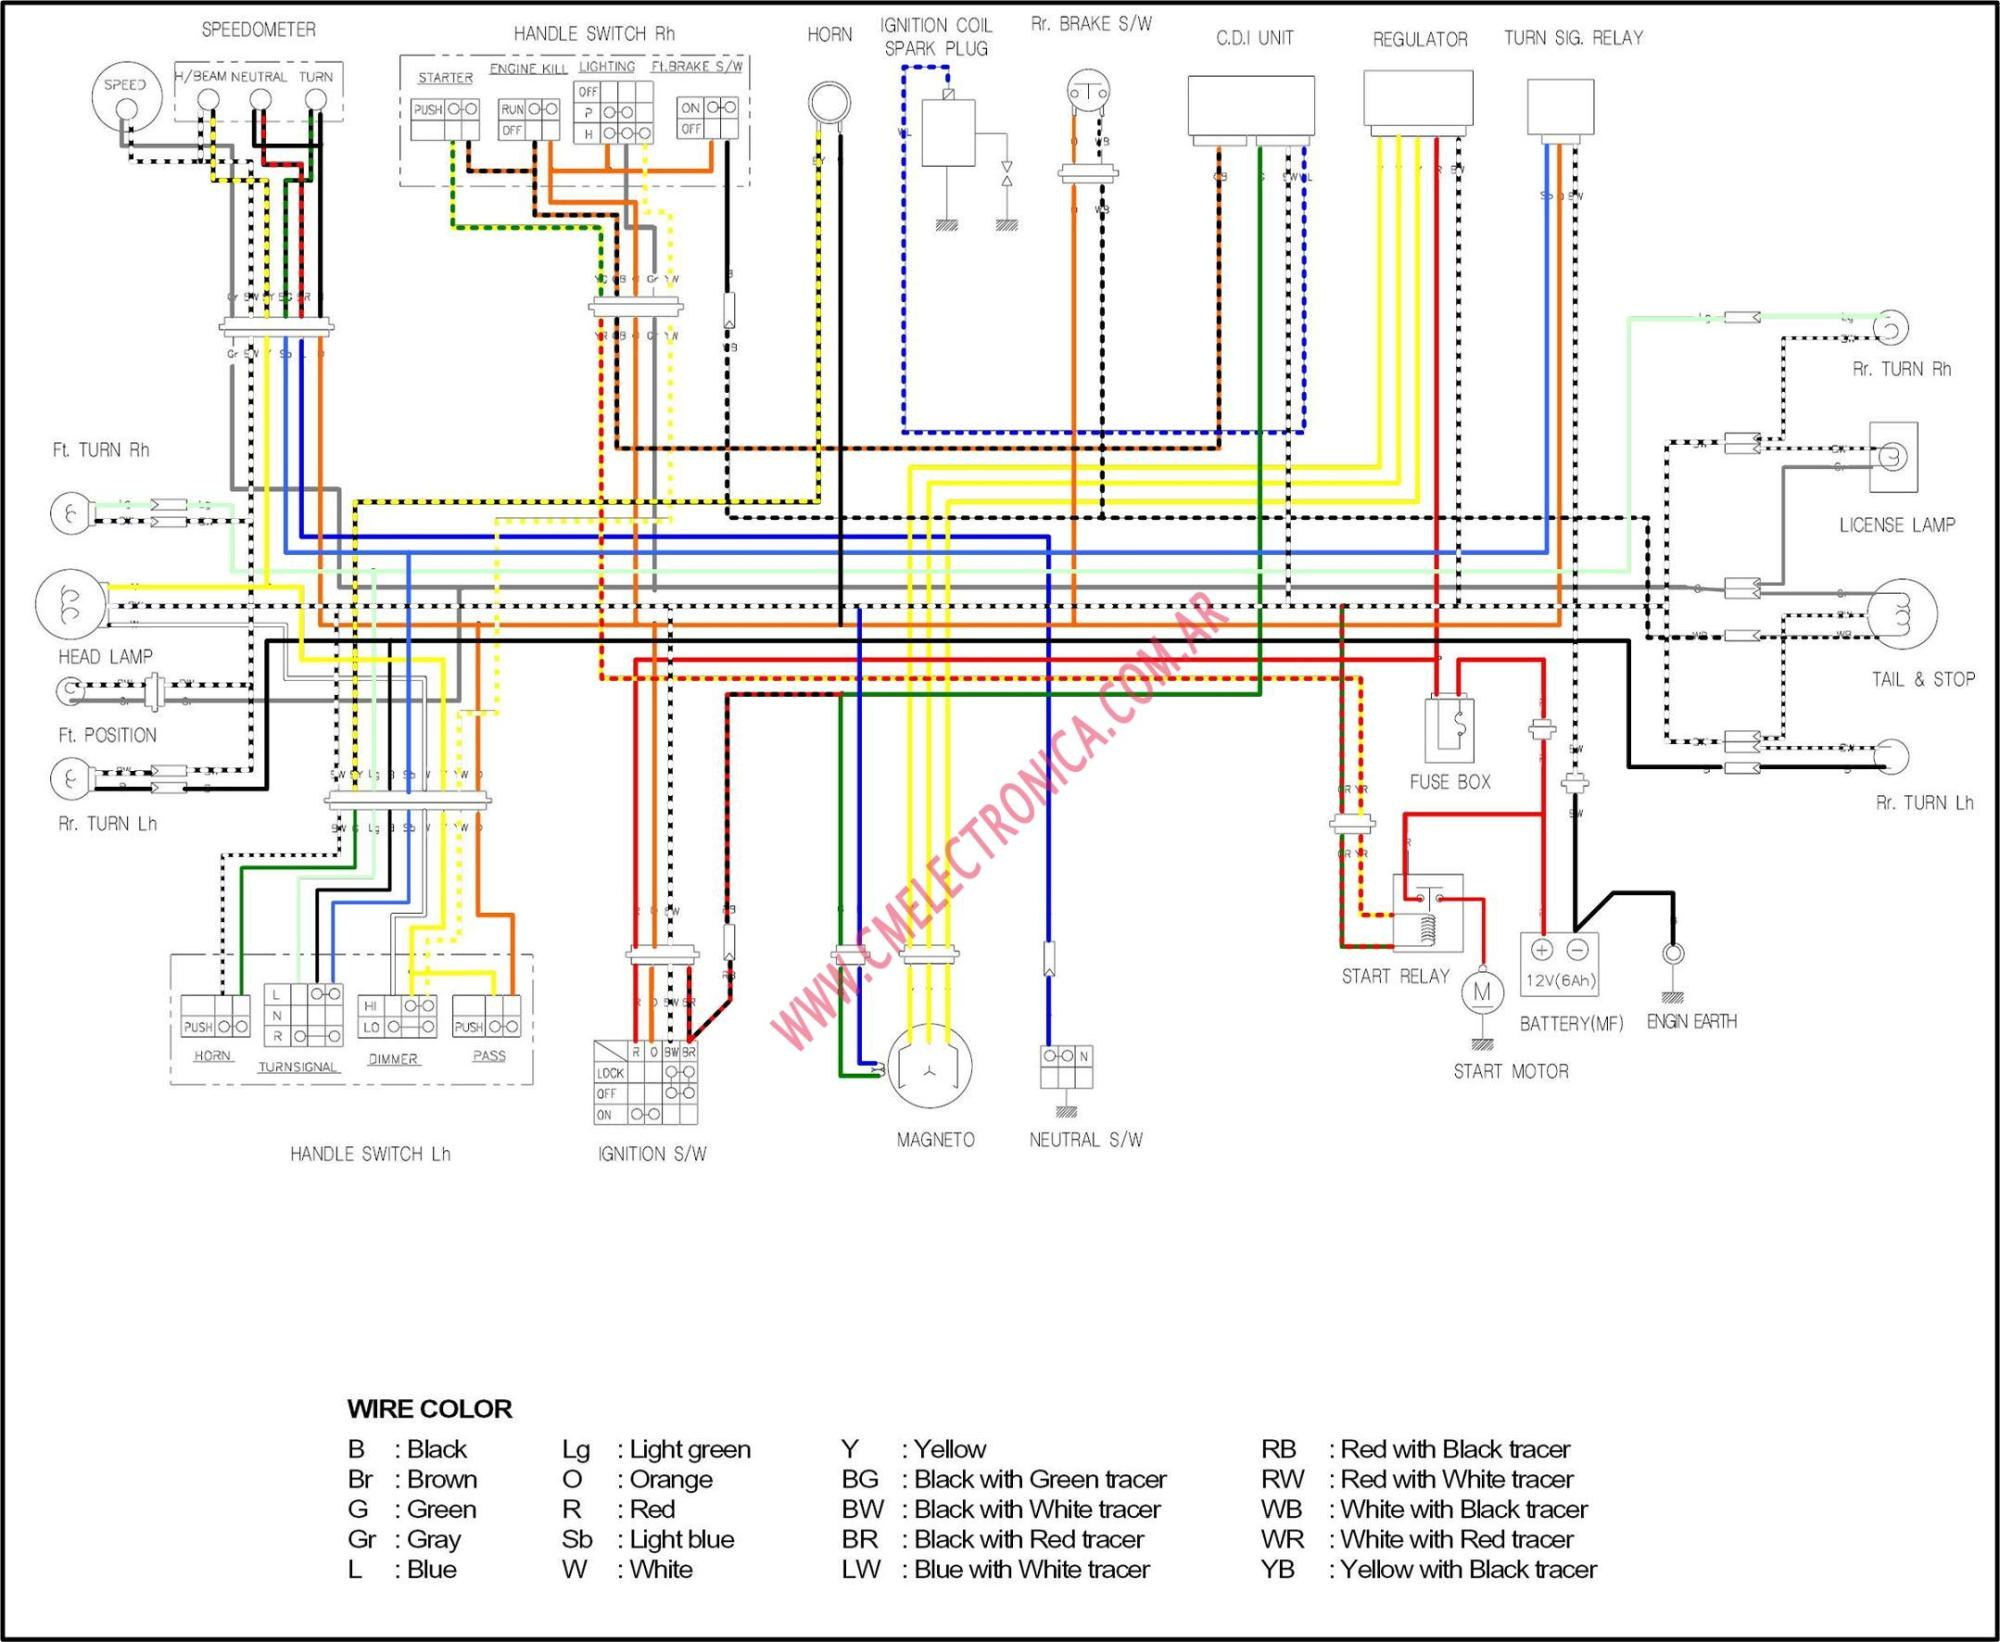 hight resolution of ltz 400 wiring diagram wiring diagramltz 400 wiring diagram wiring diagrams mix ltz 400 cdi wiring